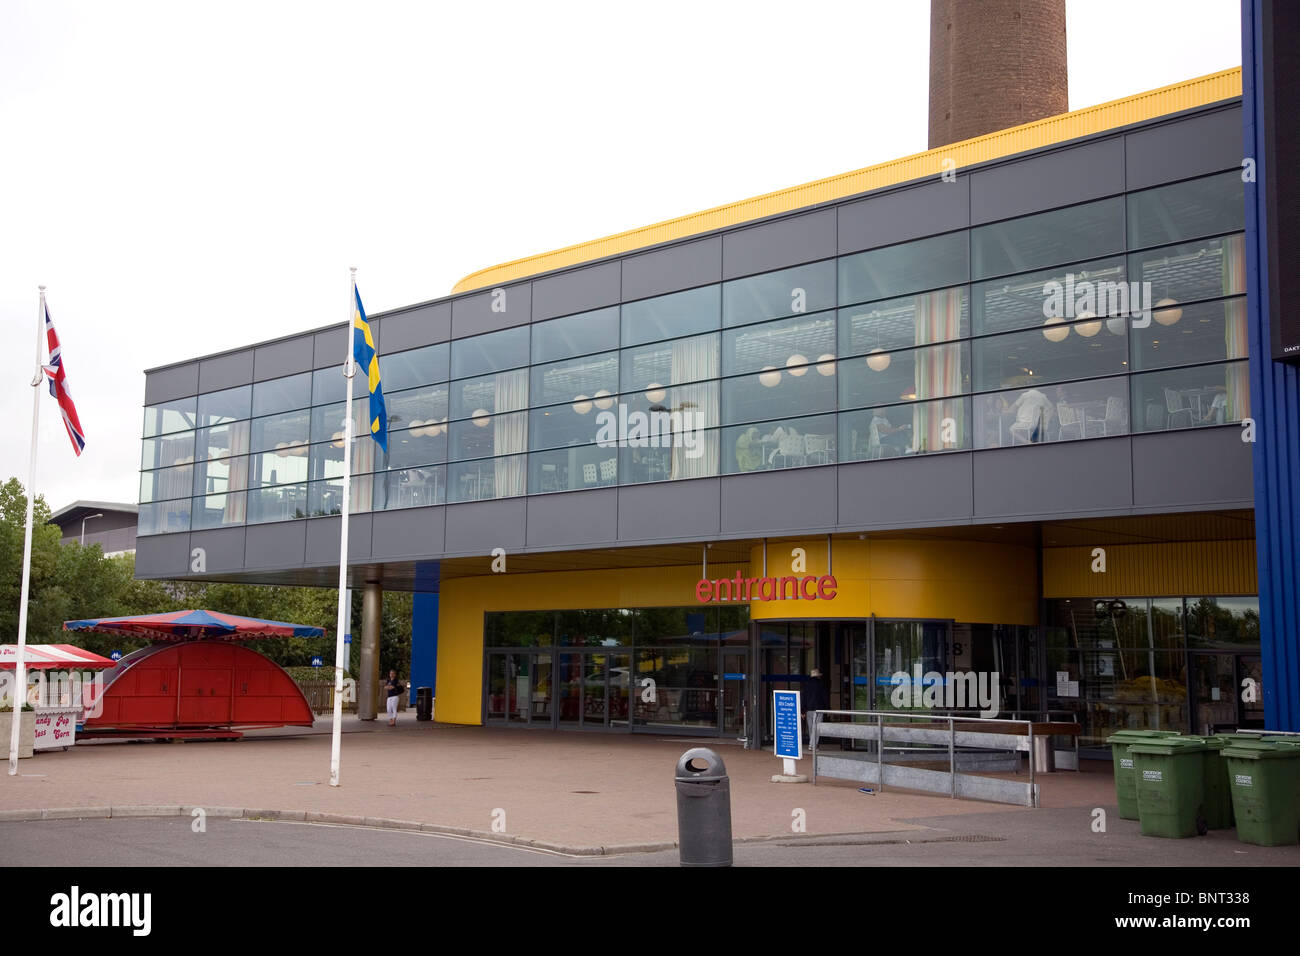 ikea store warehouse stockfotos ikea store warehouse bilder alamy. Black Bedroom Furniture Sets. Home Design Ideas